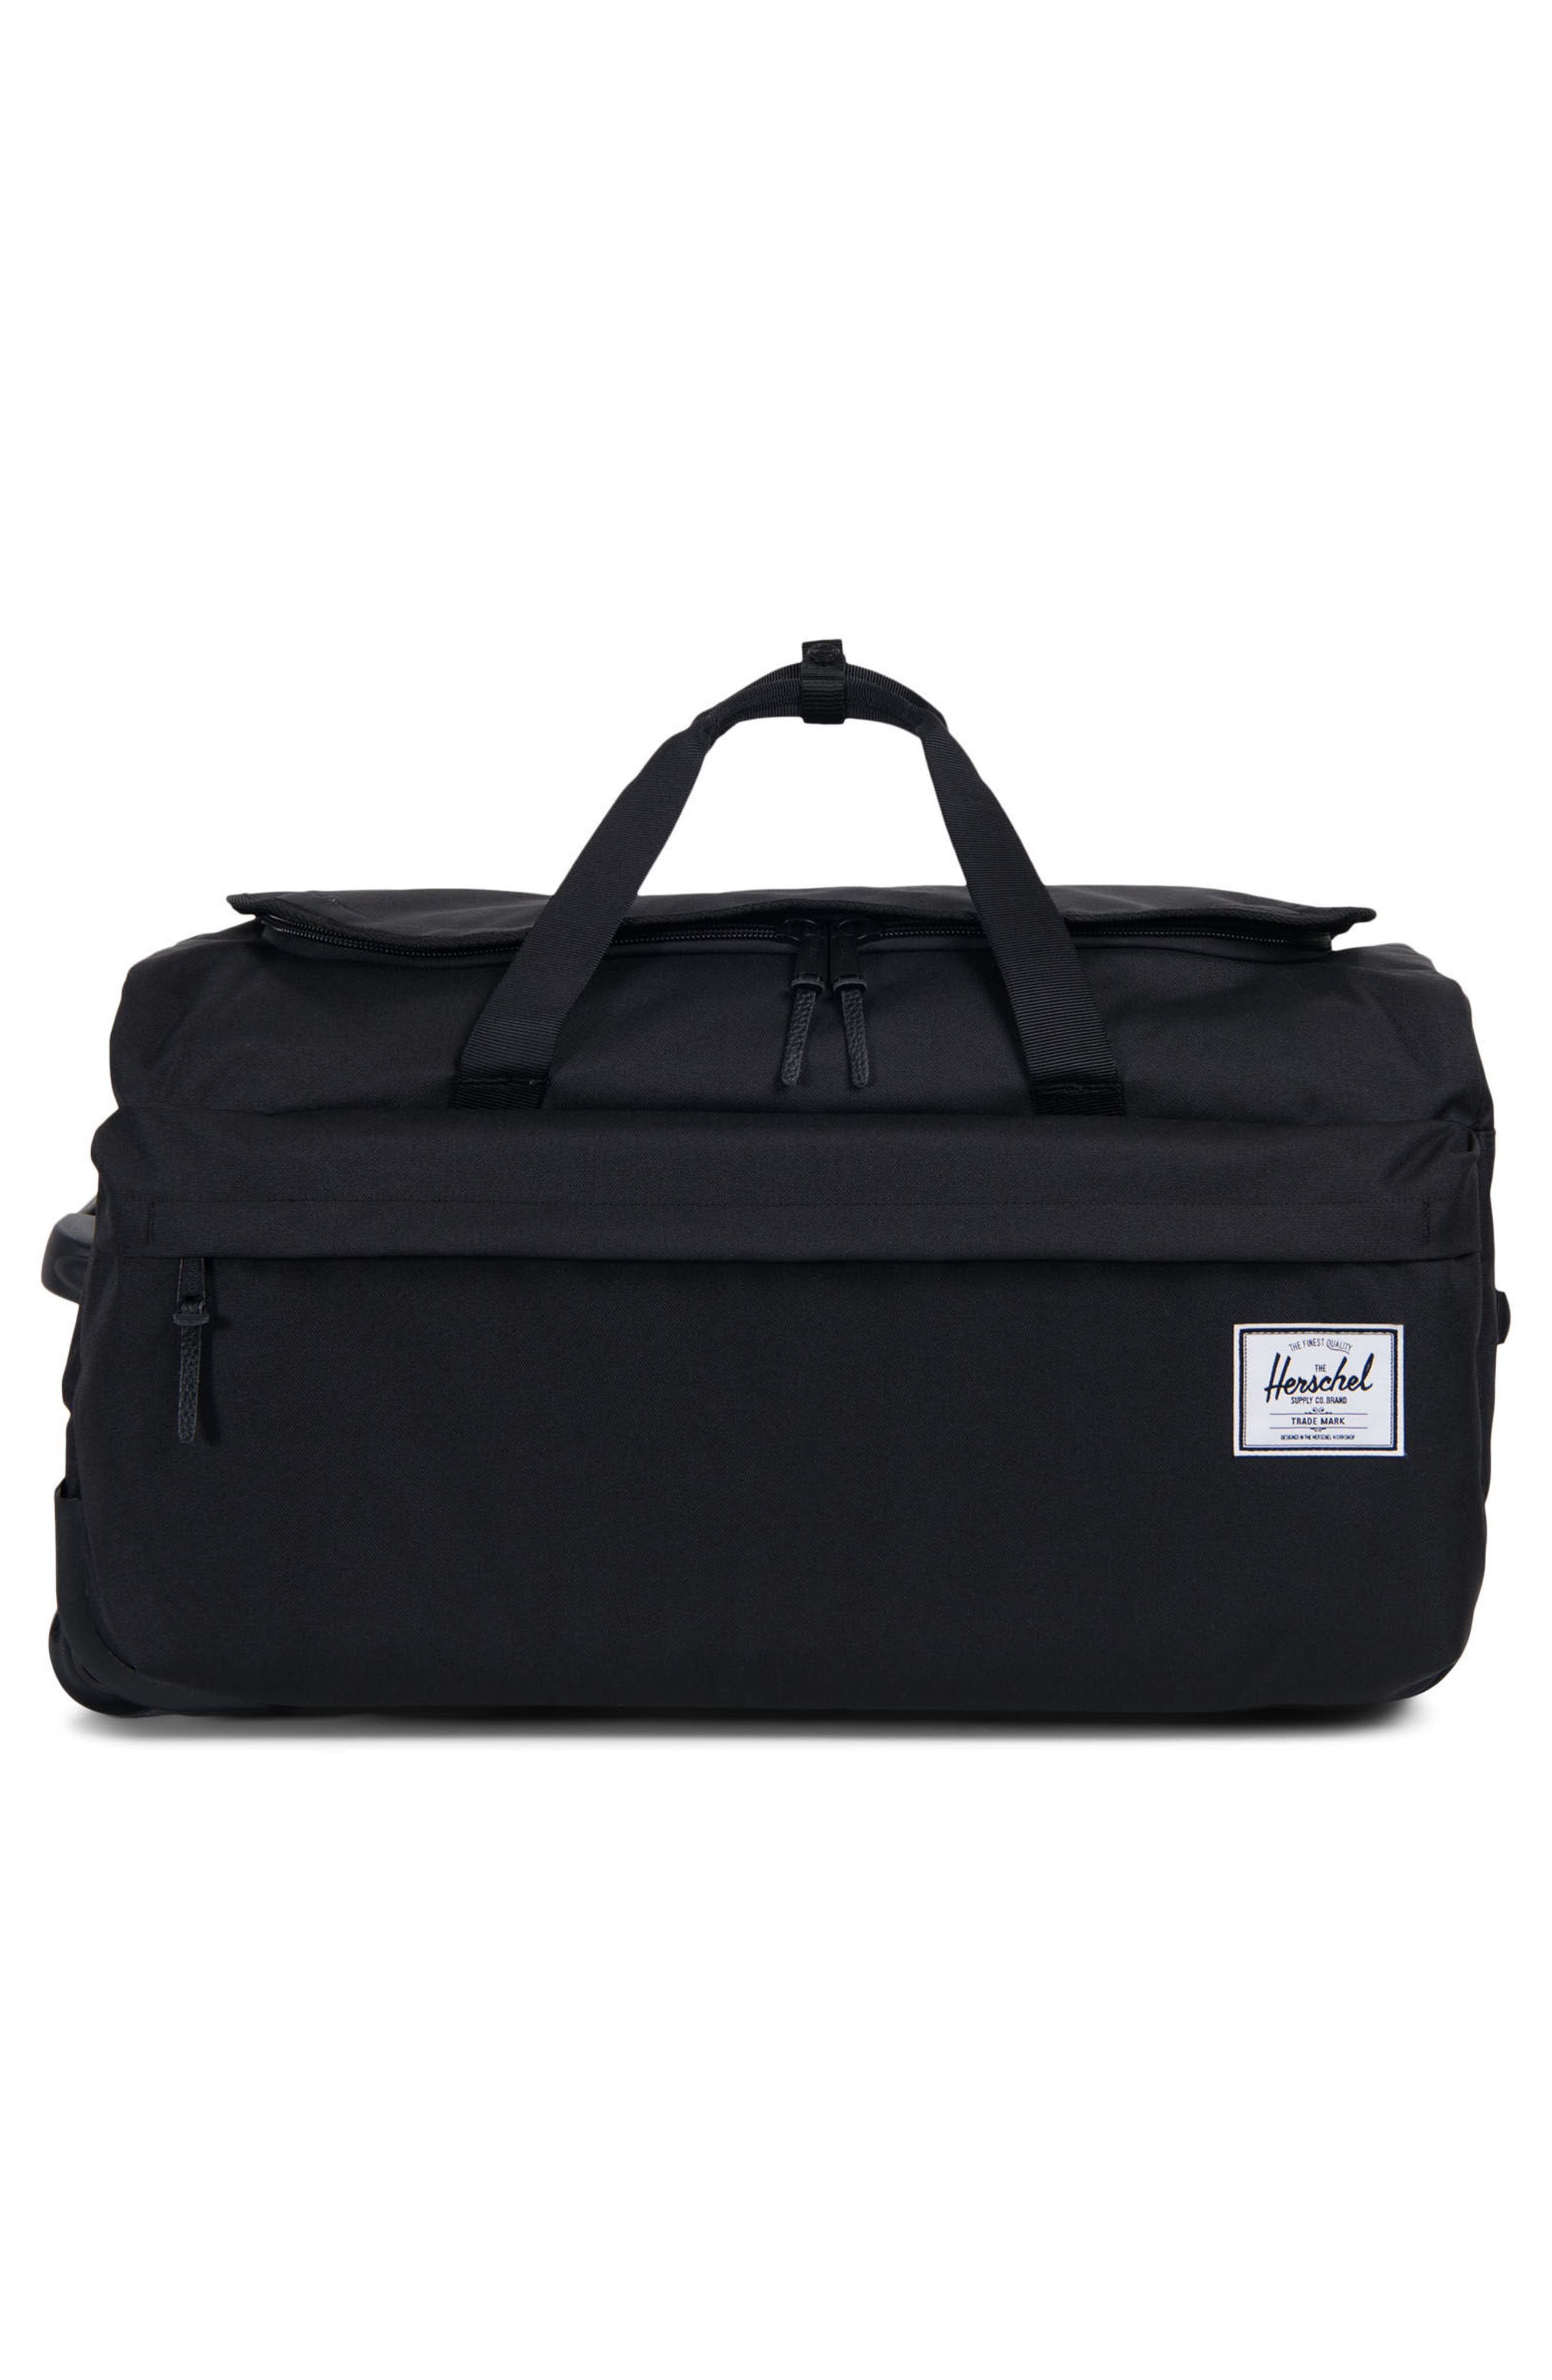 24-Inch Wheelie Rolling Carry-On,                             Alternate thumbnail 4, color,                             001